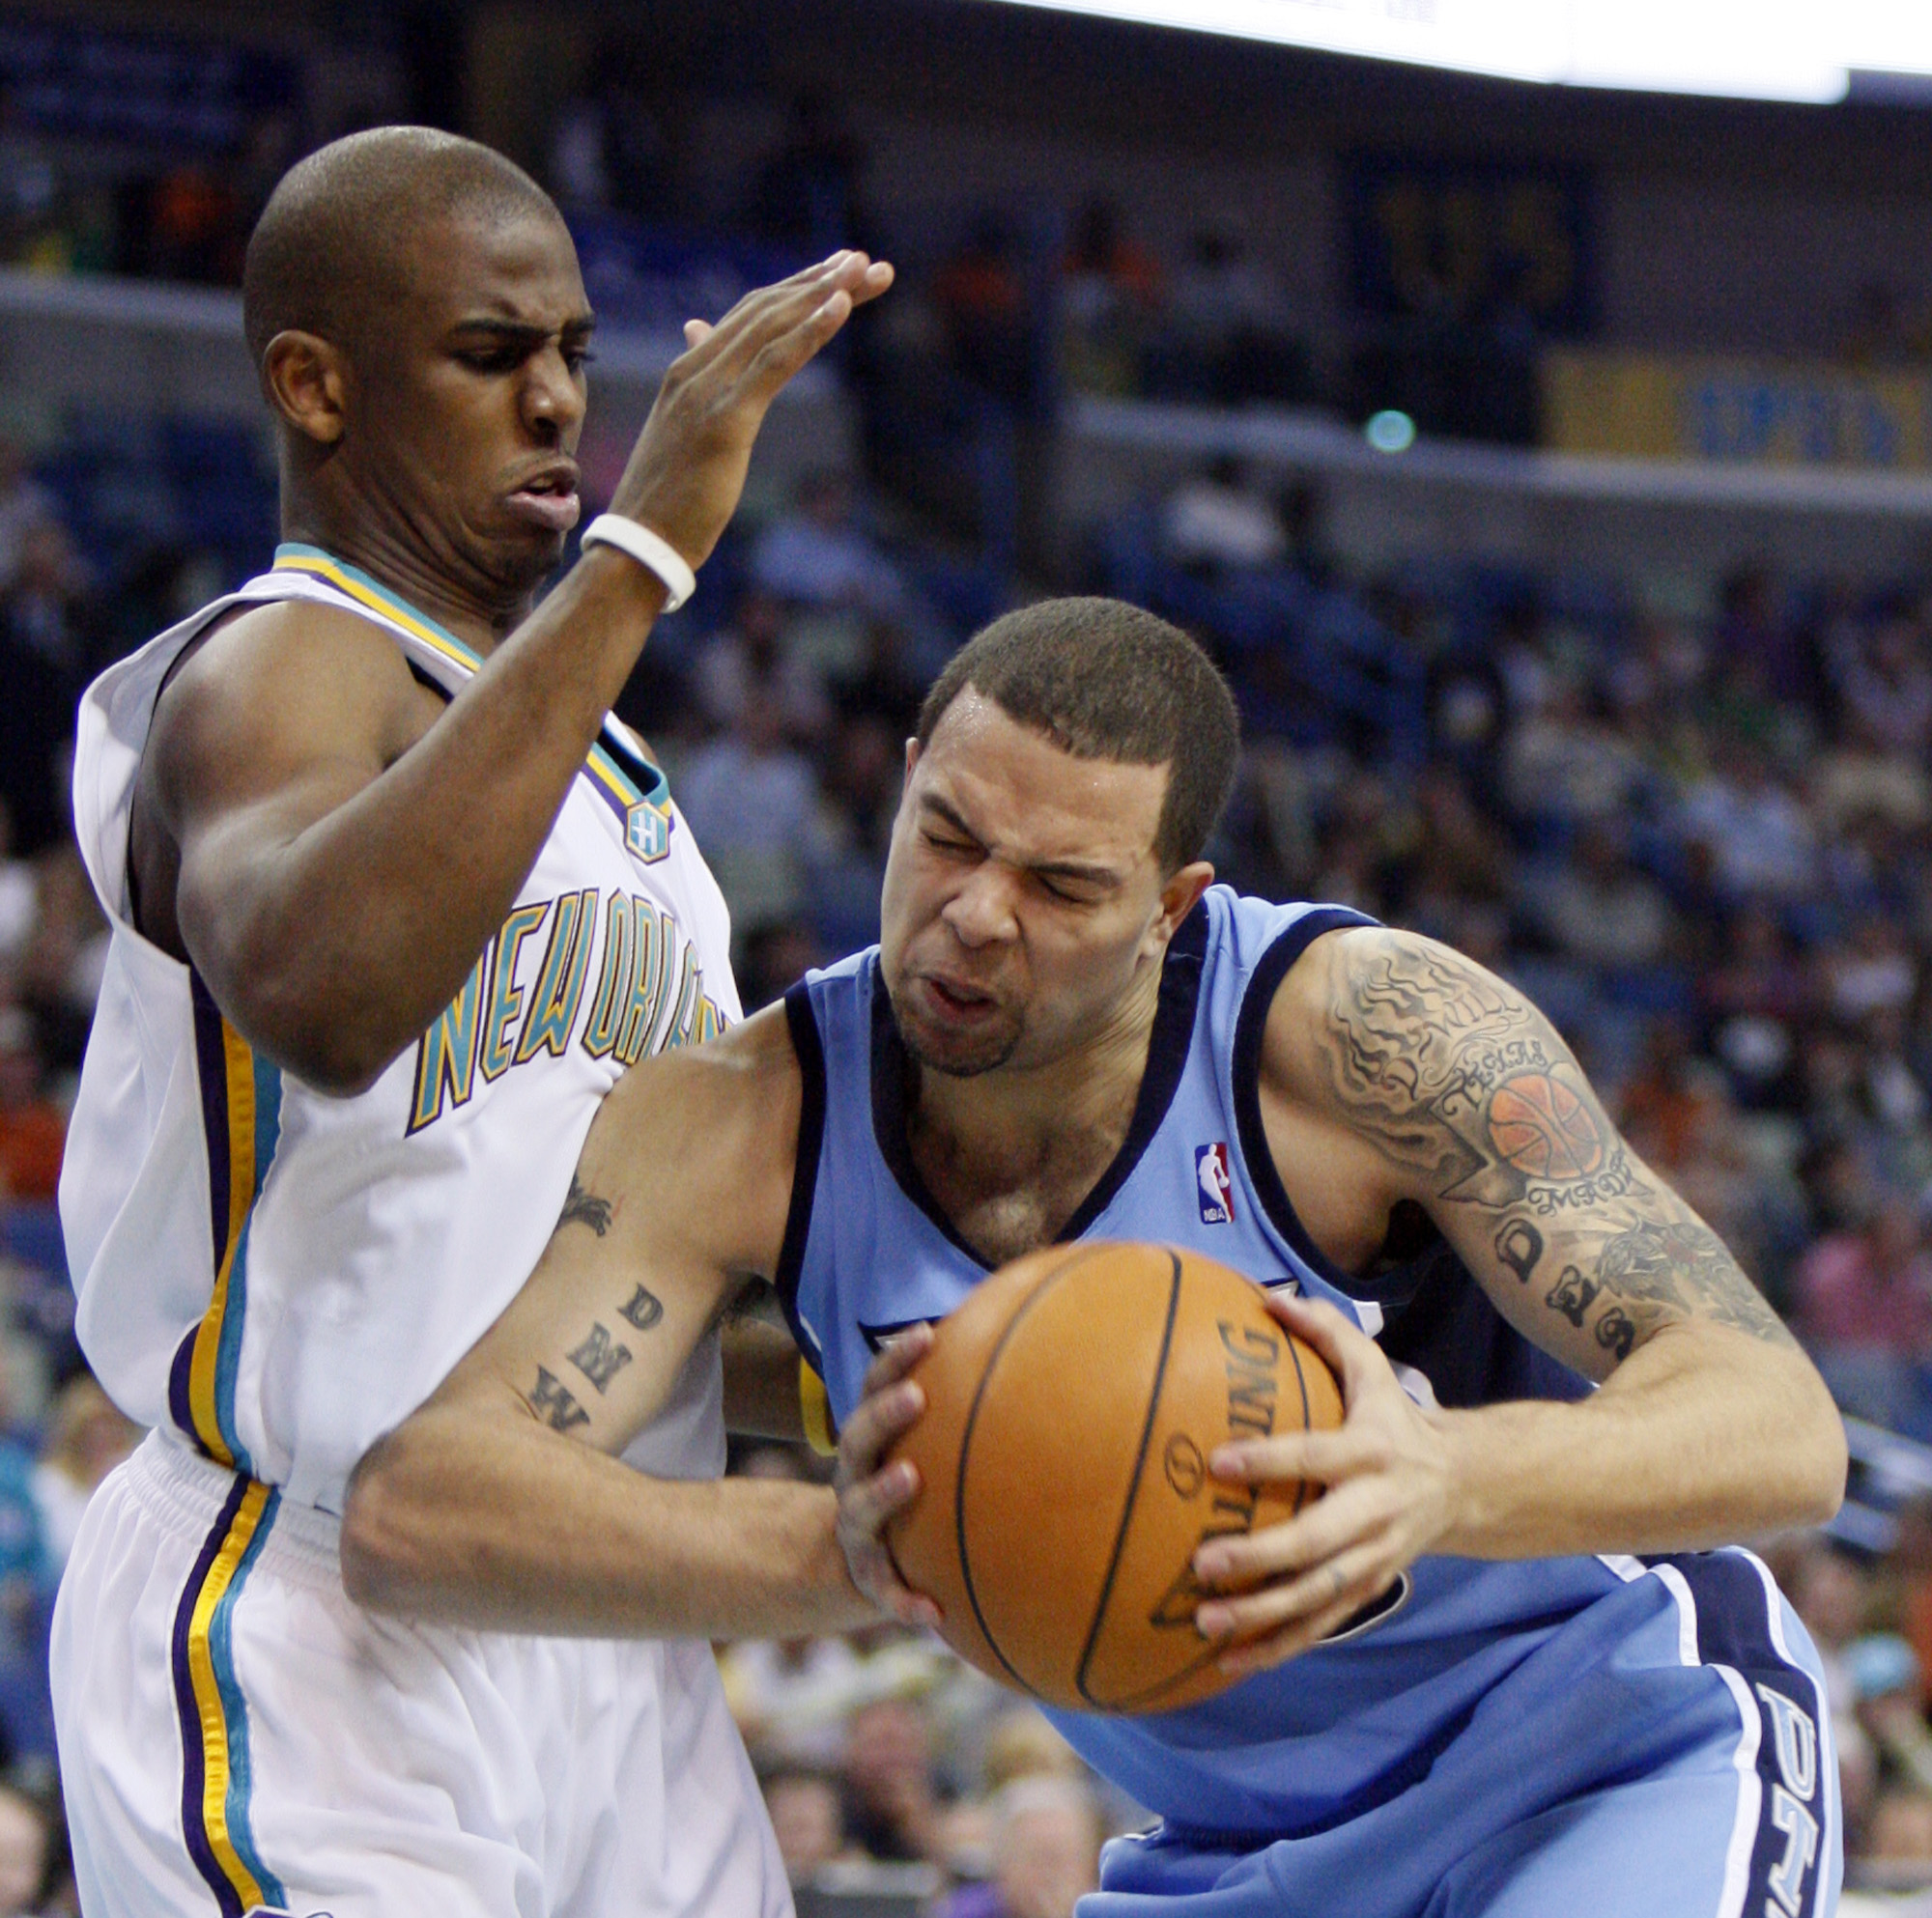 New Orleans Hornets' Chris Paul, left, guards Utah Jazz's Deron Williams in the first half of their NBA basketball game in New Orleans, Louisiana on F...